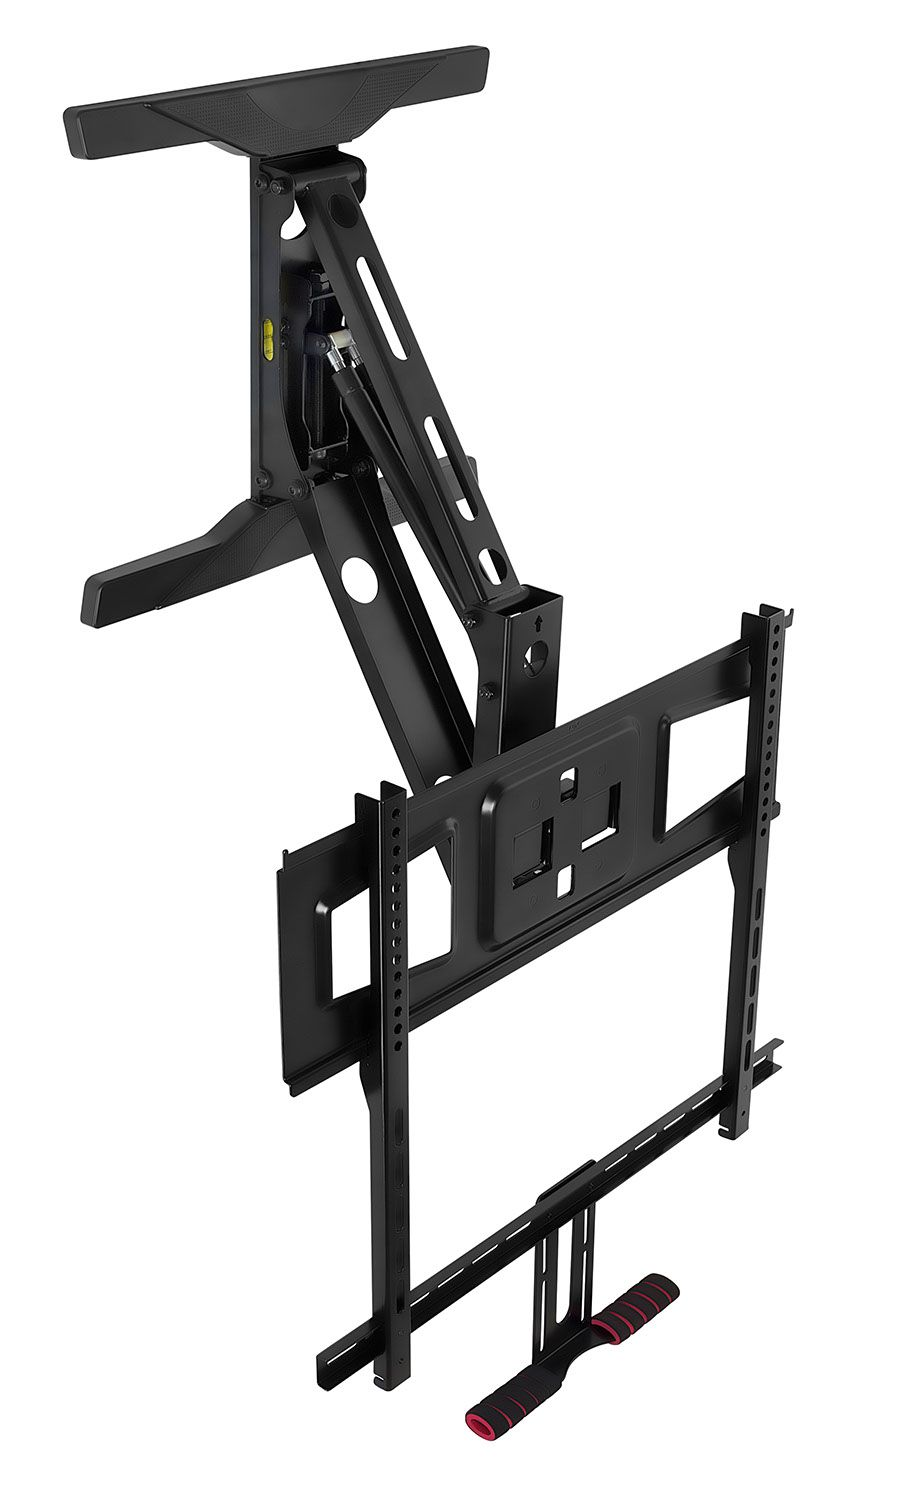 Mount It Pull Down Tv Wall Mount For 40 43 Inch 50 Inch 55 Inch